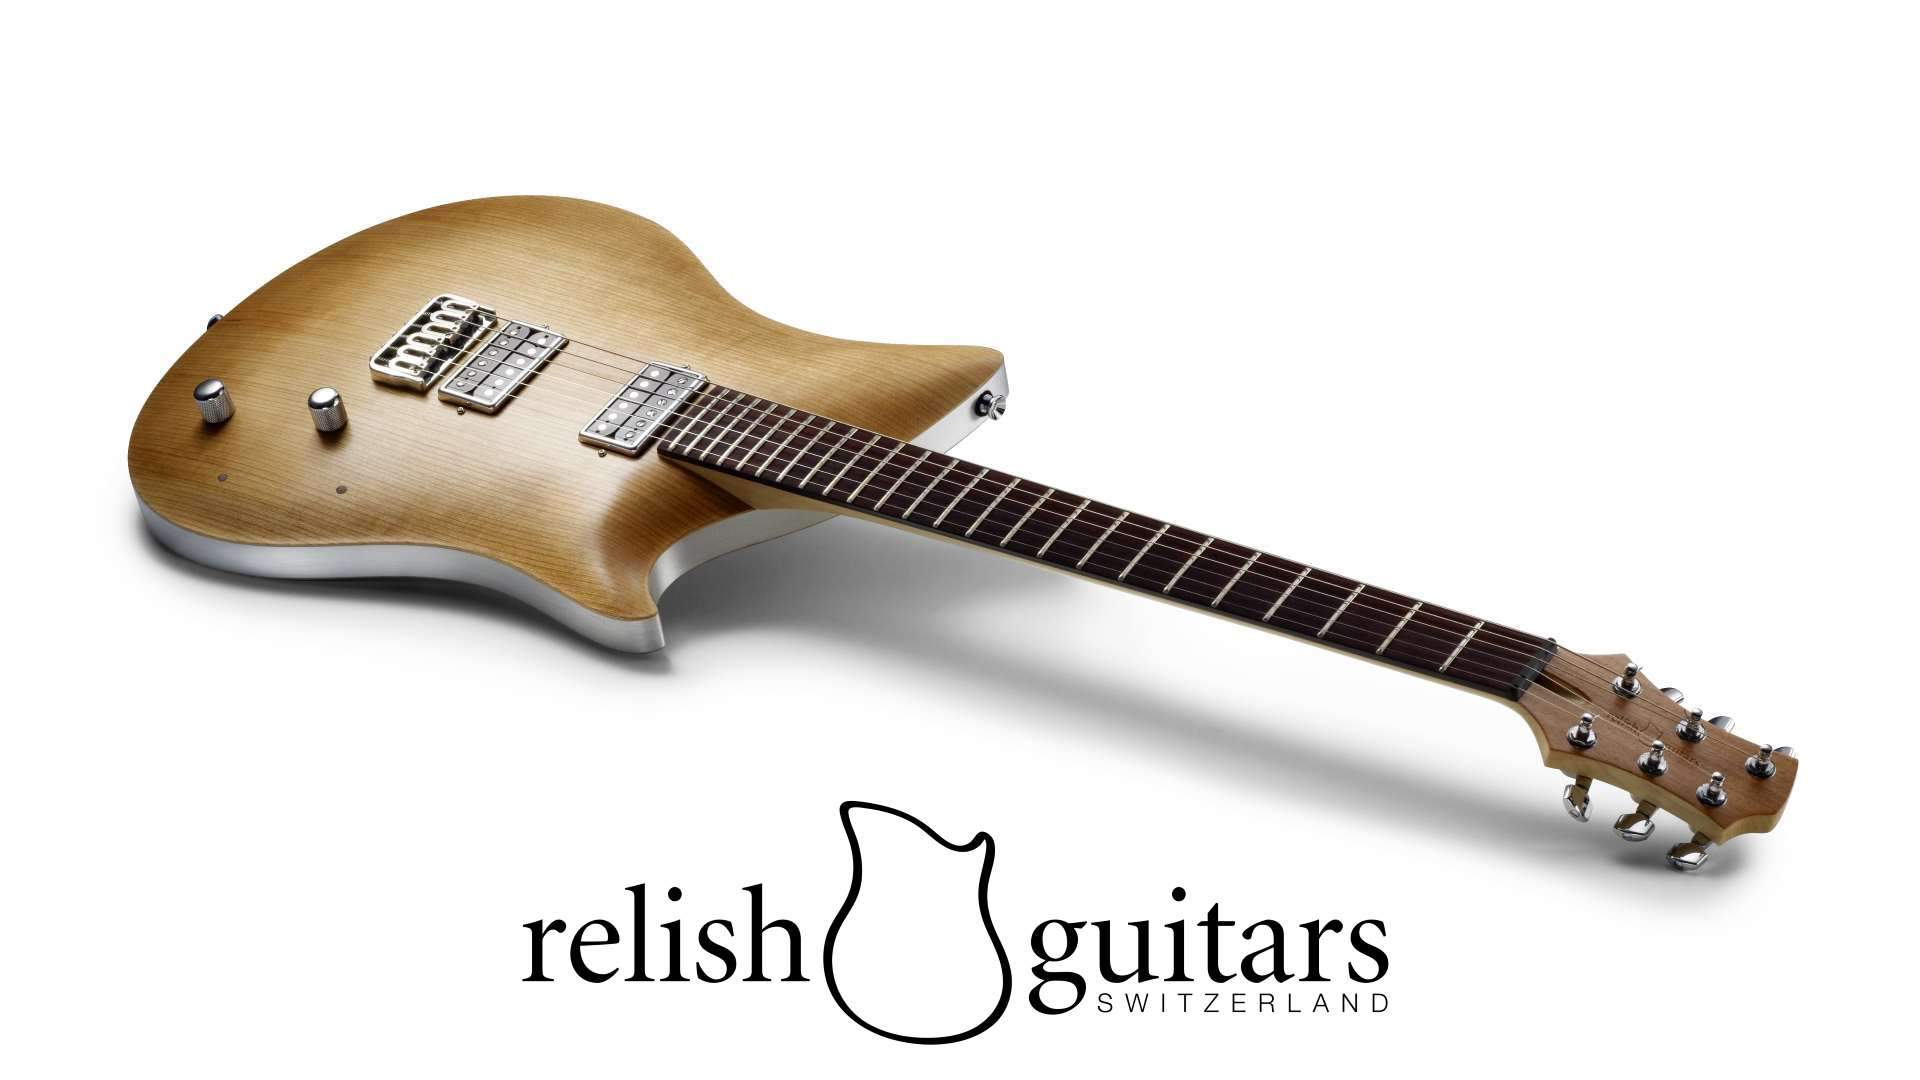 guitars by relish guitars a guitar with a white background